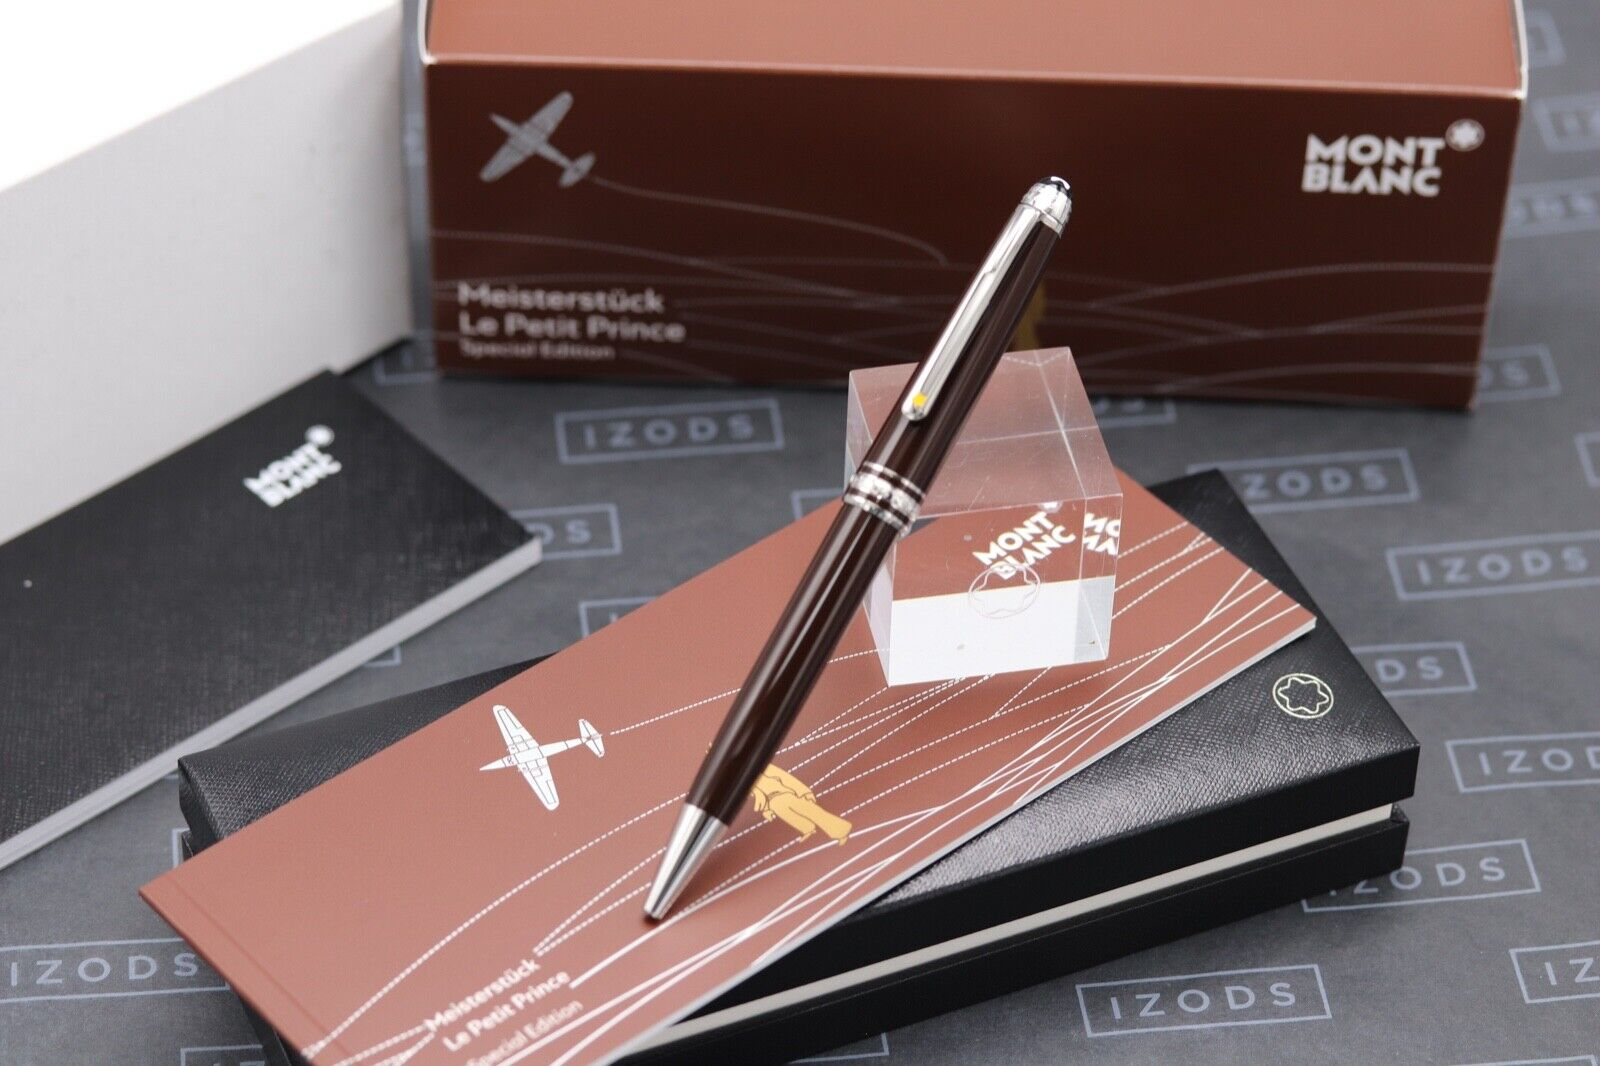 Montblanc Meisterstuck Classique Le Petit Prince Aviator Ballpoint Pen - NEW MARCH 21